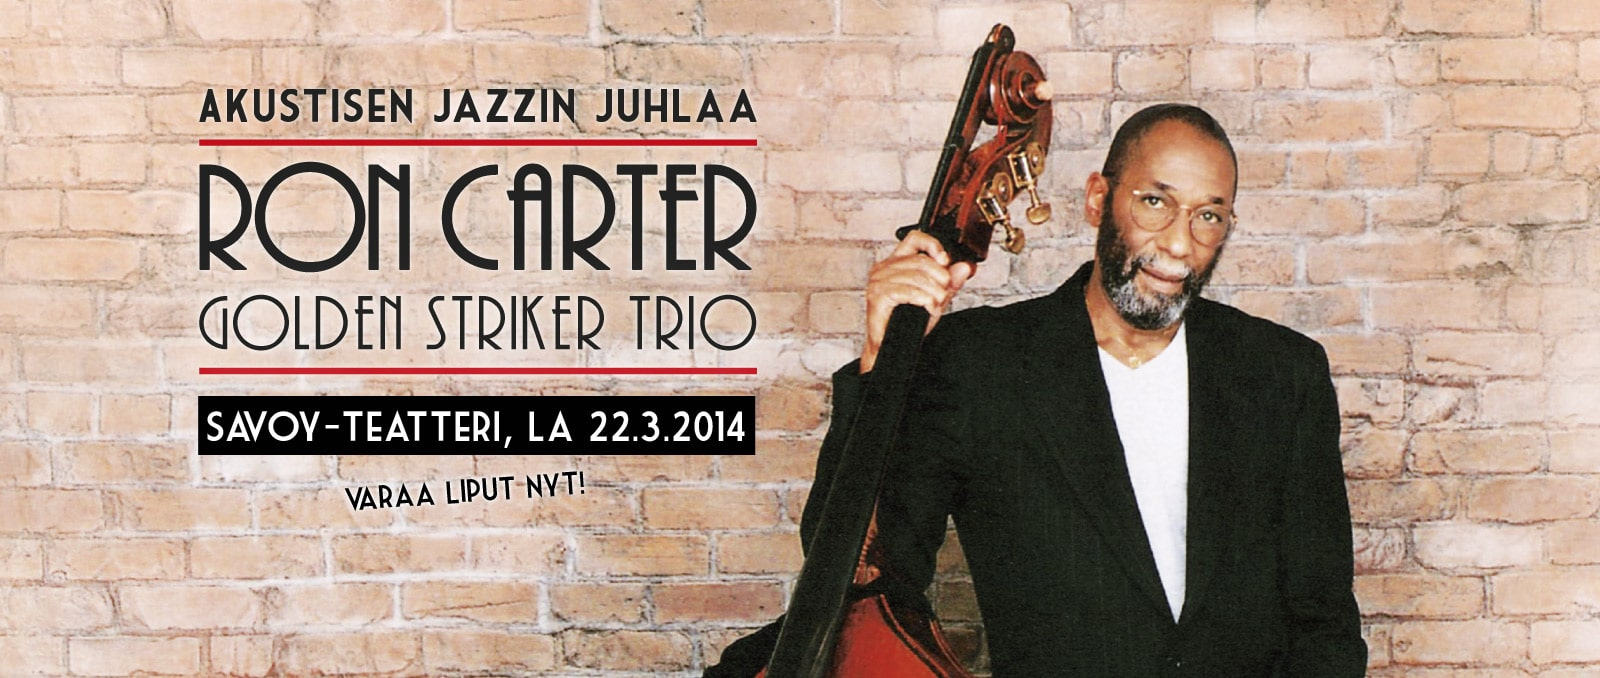 Ron_Carter_Golden_Striker_Trio_Suomeen2